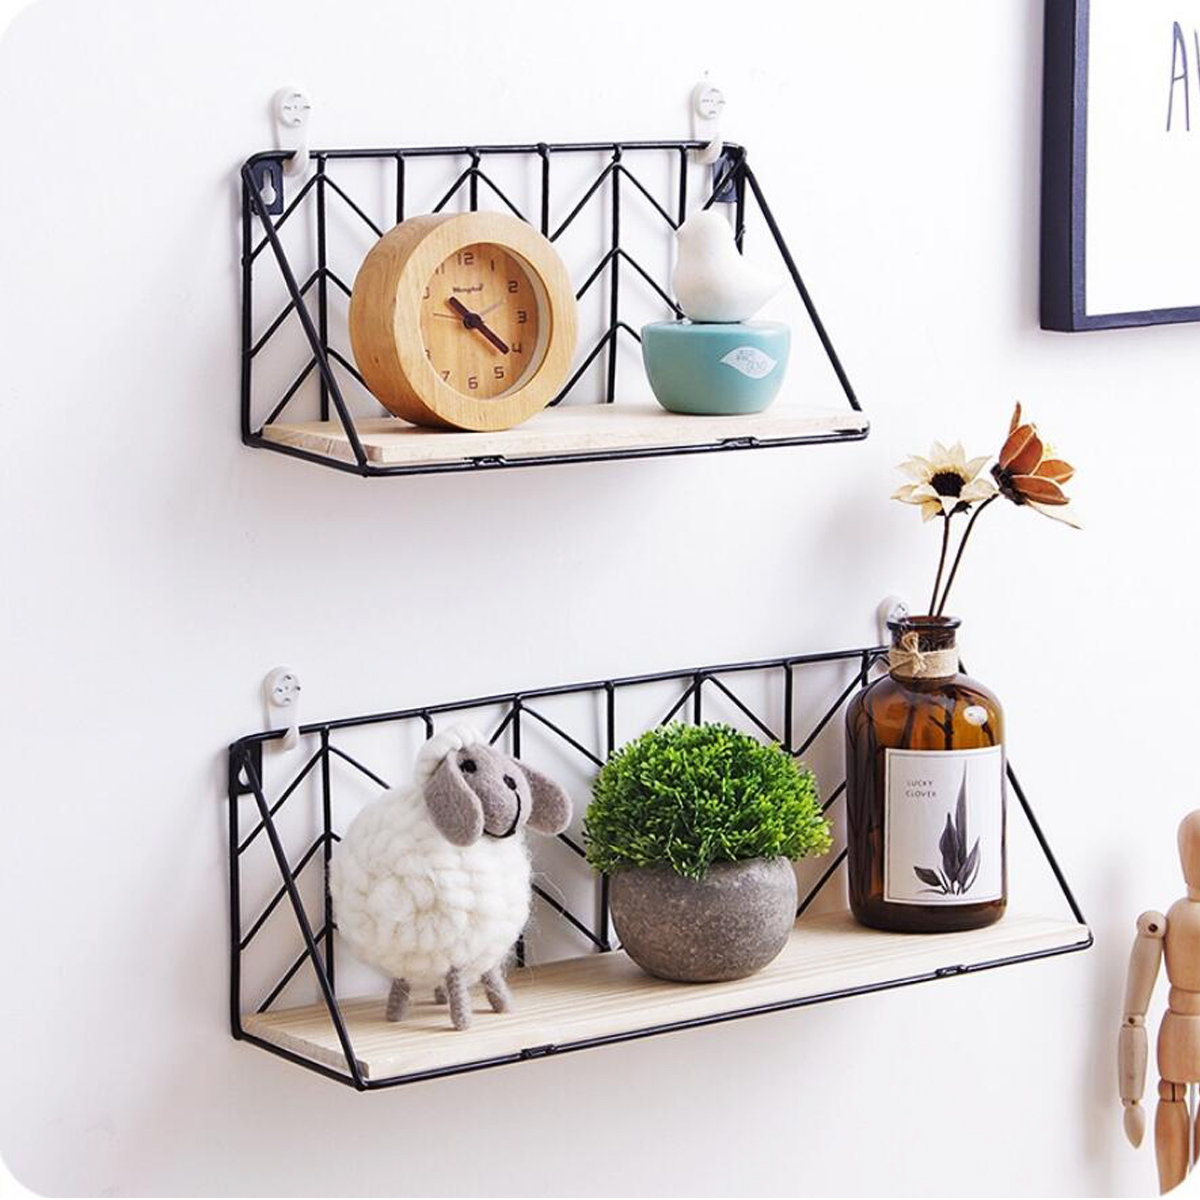 Iron_Metal_&_Wood_Wall_Floating_Shelves_Shelf_Bracket_Industrial_Modern_Storage_Hallway_Home_Decor